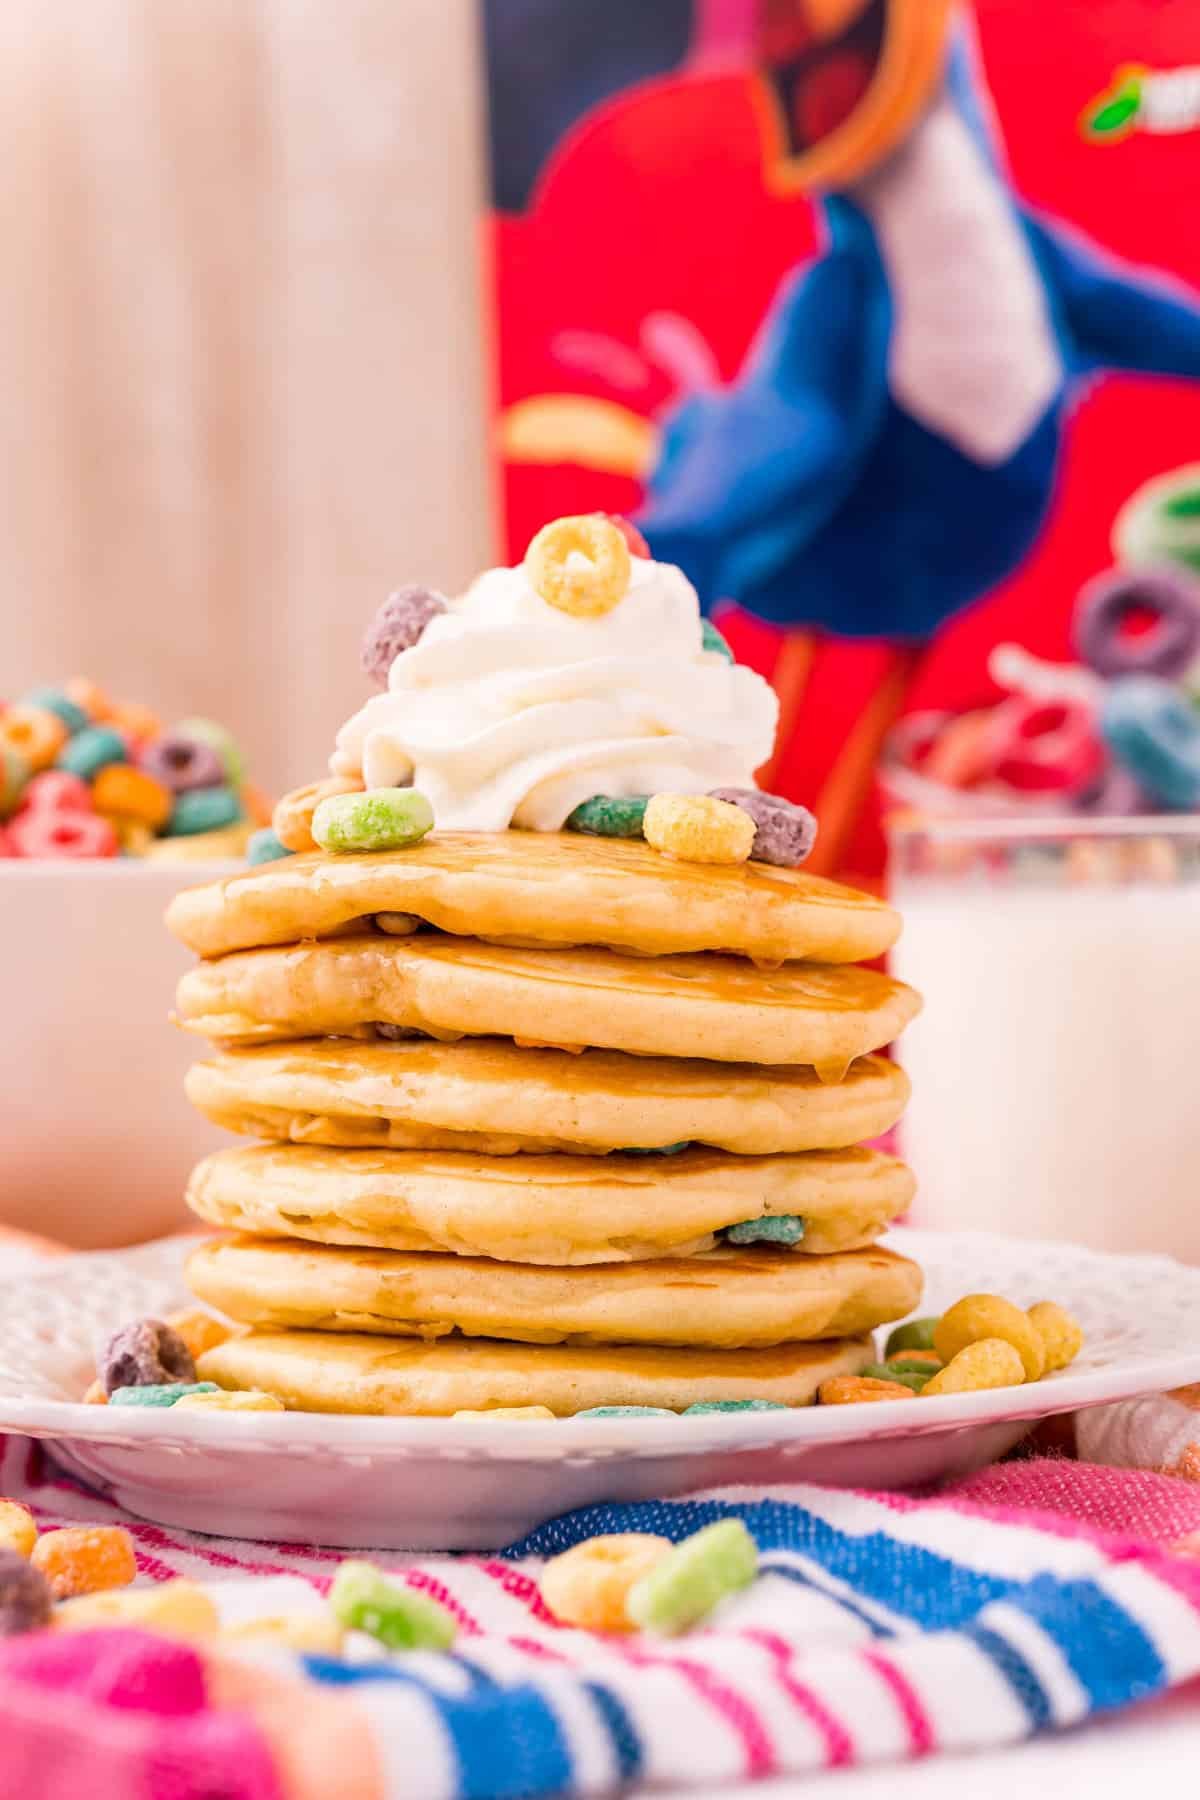 Pancakes topped with whipped cream and cereal.